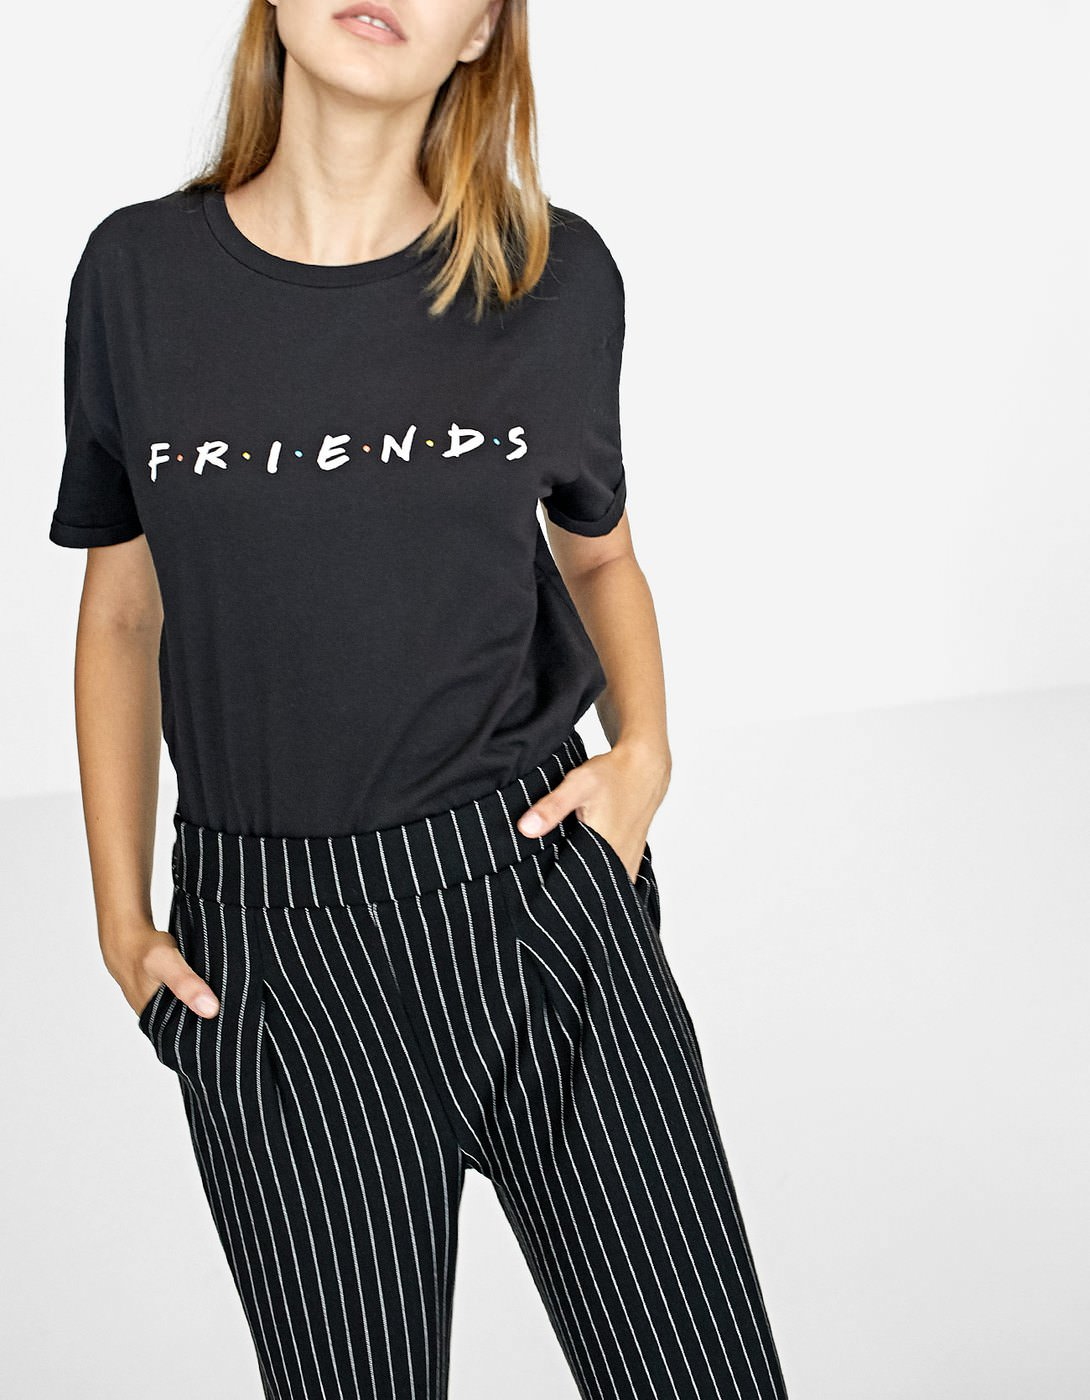 Blog-Mode-And-The-City-Lifestyle-Cinq-Petites-Choses-213-tee-shirt-friends-stradivarius